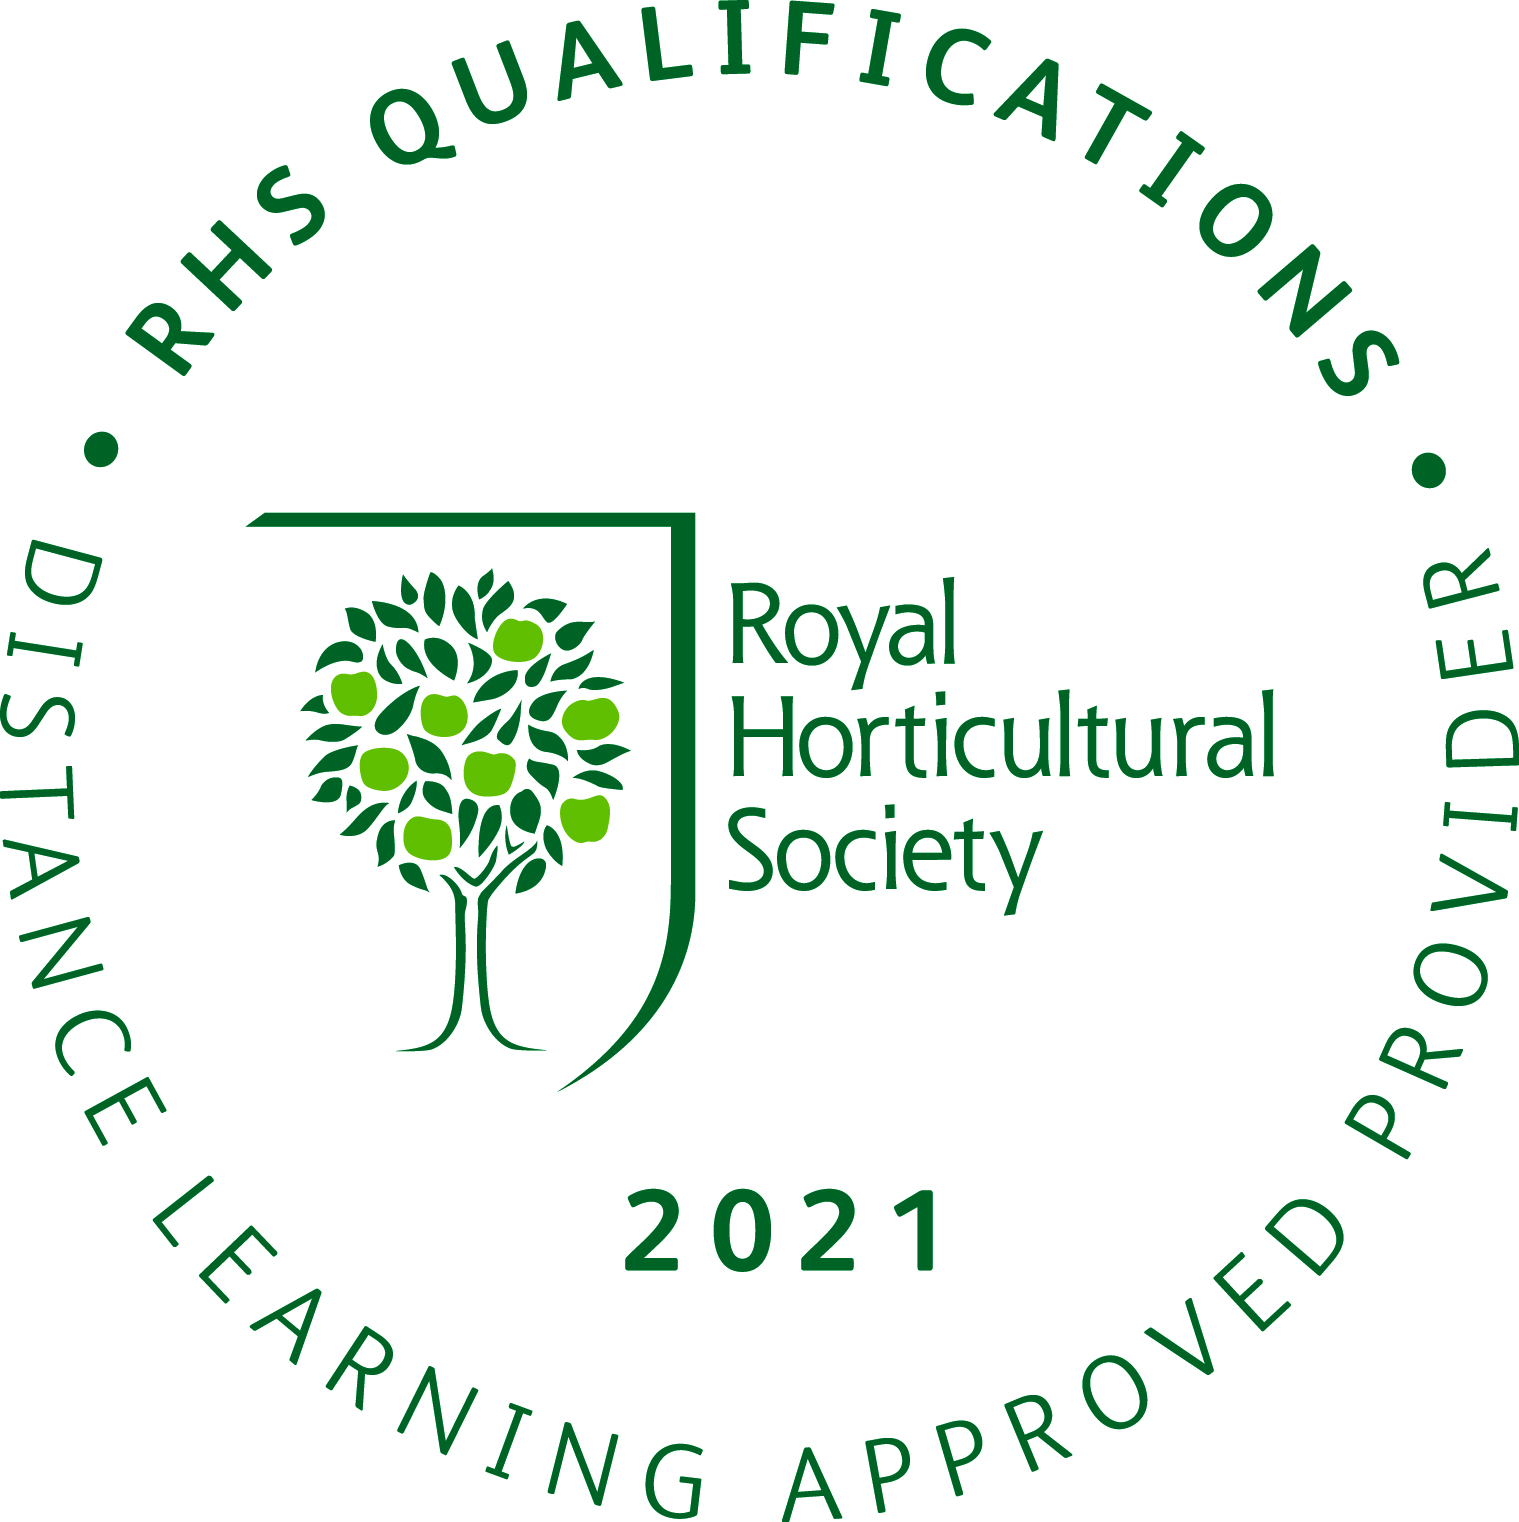 RHS Qualifications Distance Learning Approved Provider 2021